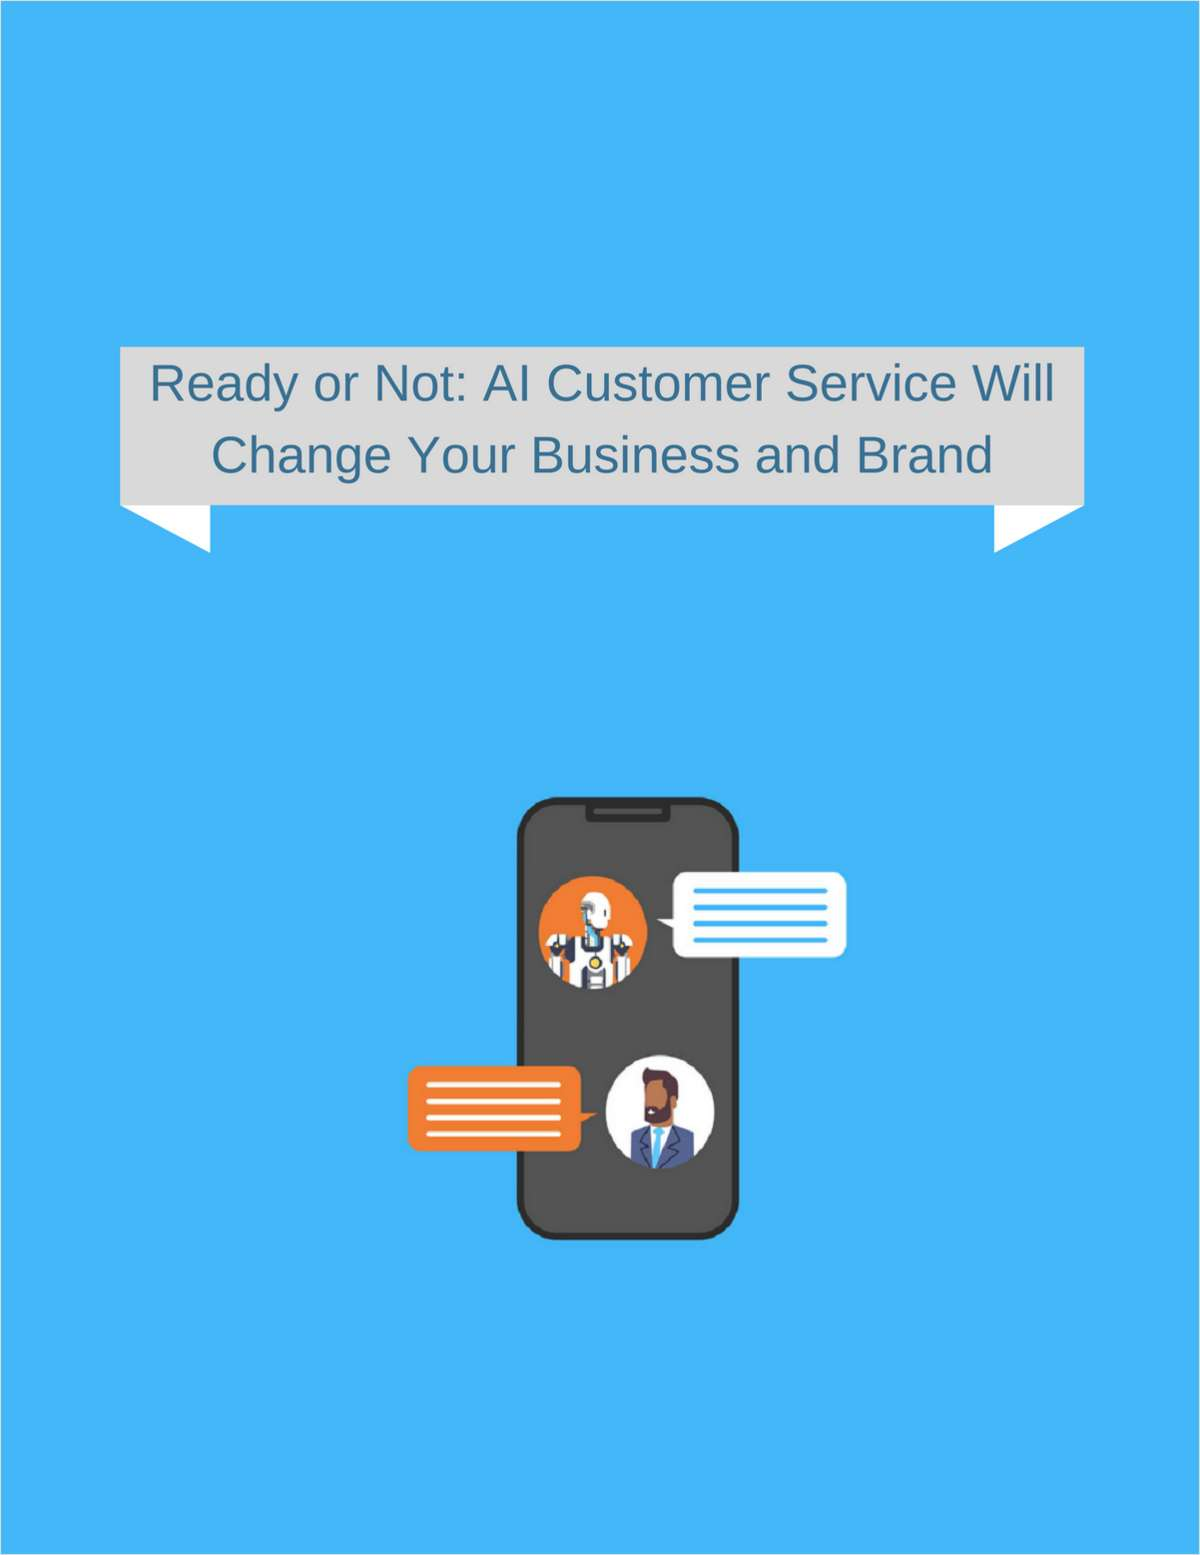 Ready or Not: AI Customer Service Will Change Your Business and Brand